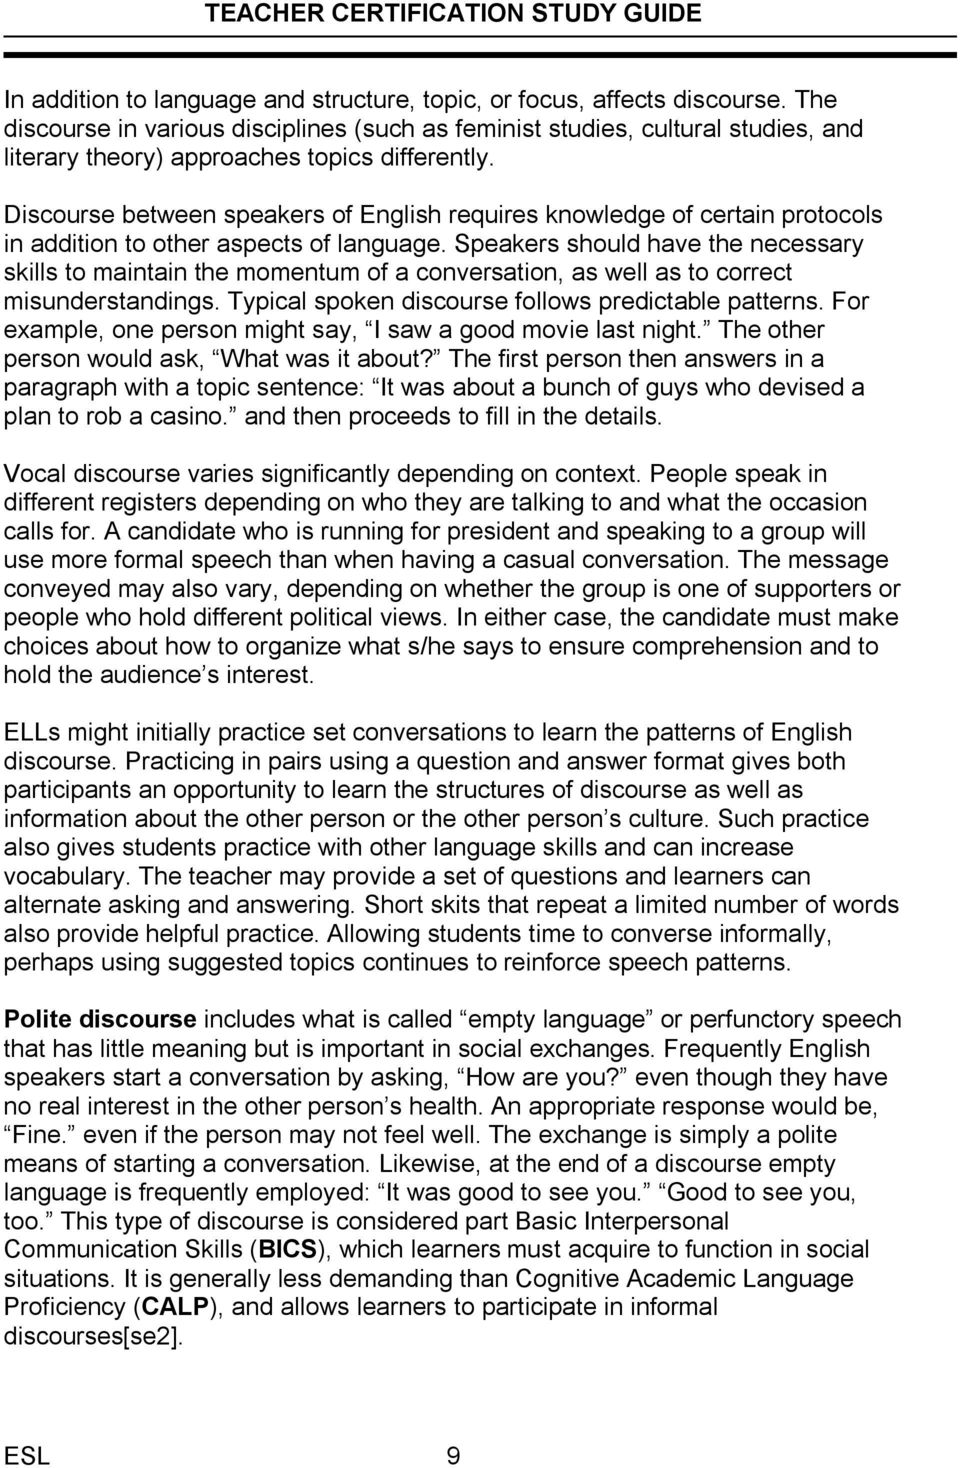 Discourse between speakers of English requires knowledge of certain protocols in addition to other aspects of language.